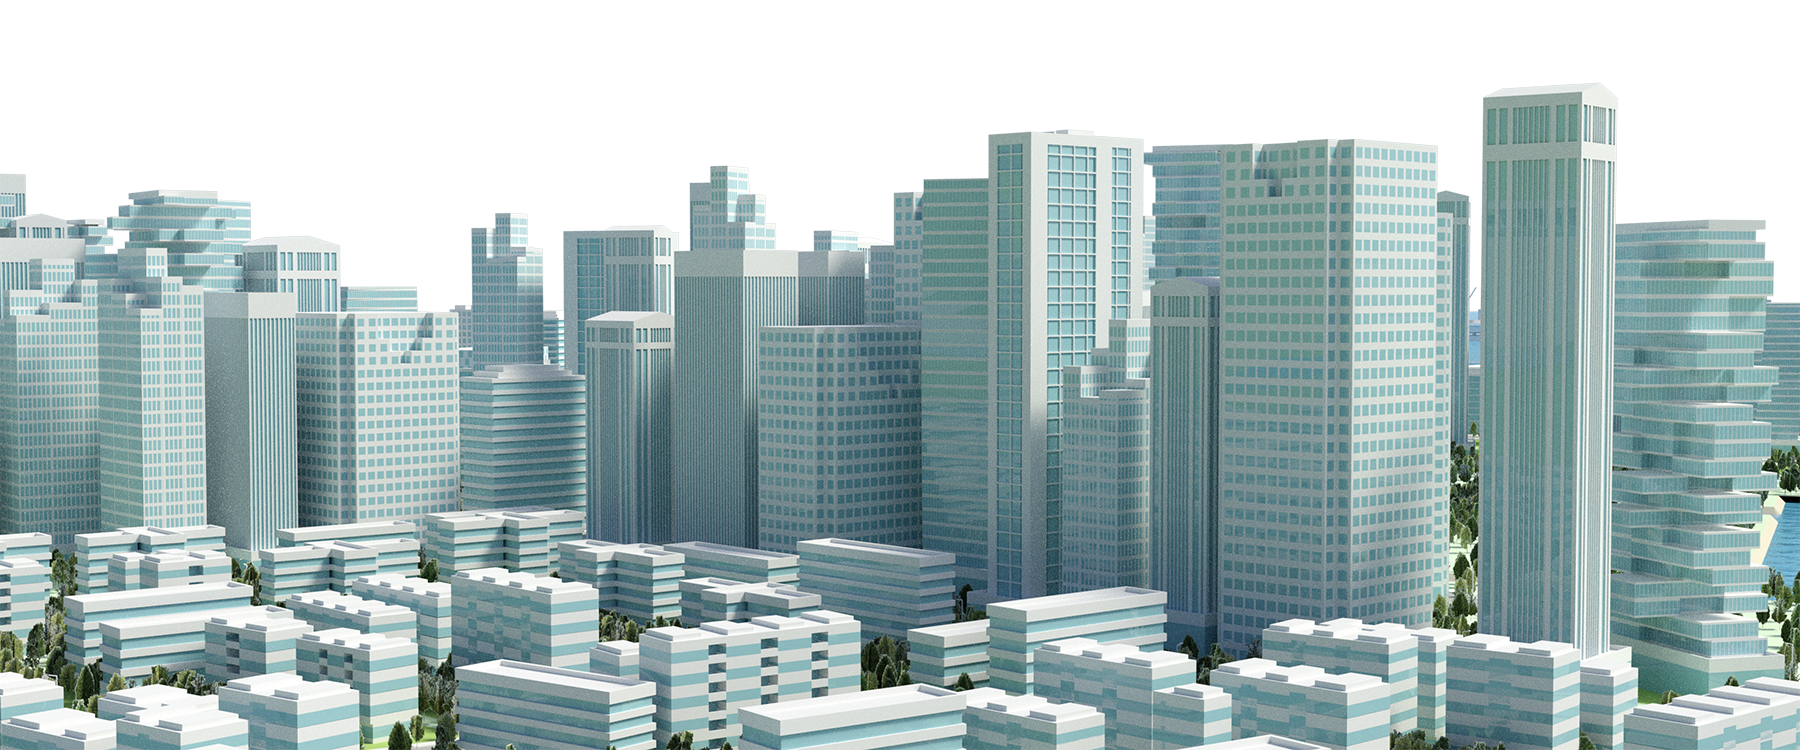 Download City Buildings Png Image For Free Building skyline skyscraper architecture, building illustration. download city buildings png image for free